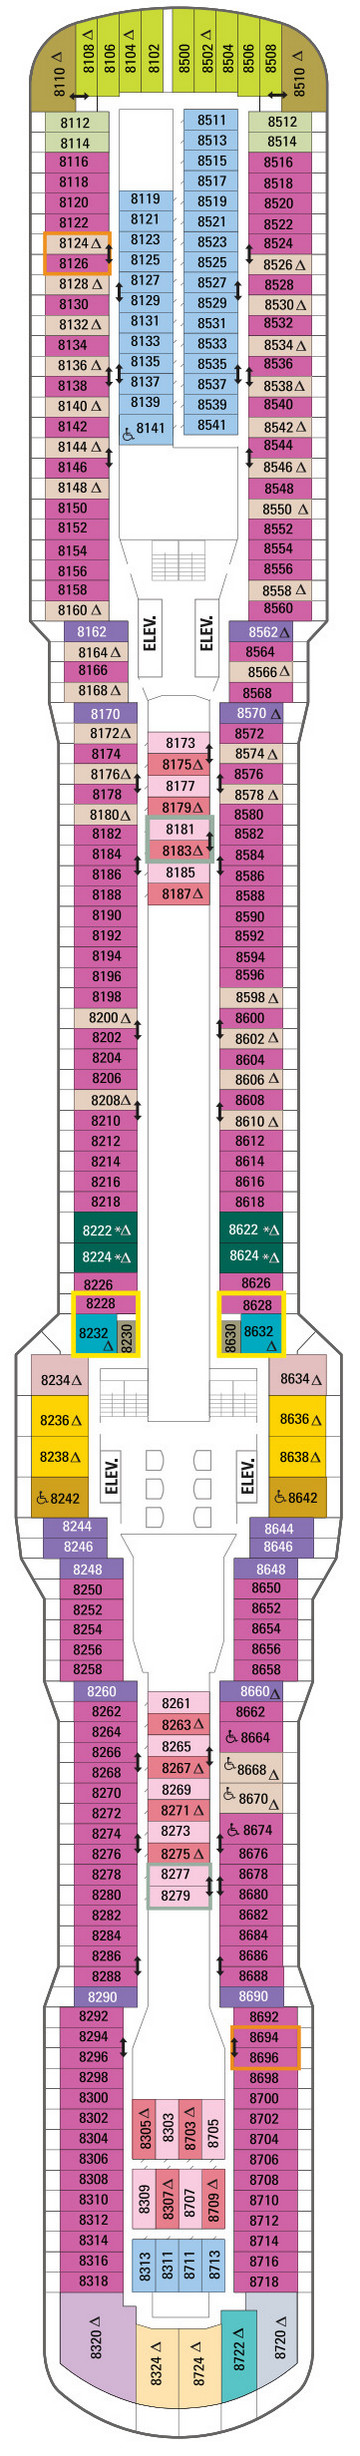 Quantum Of The Seas Deck 8 layout